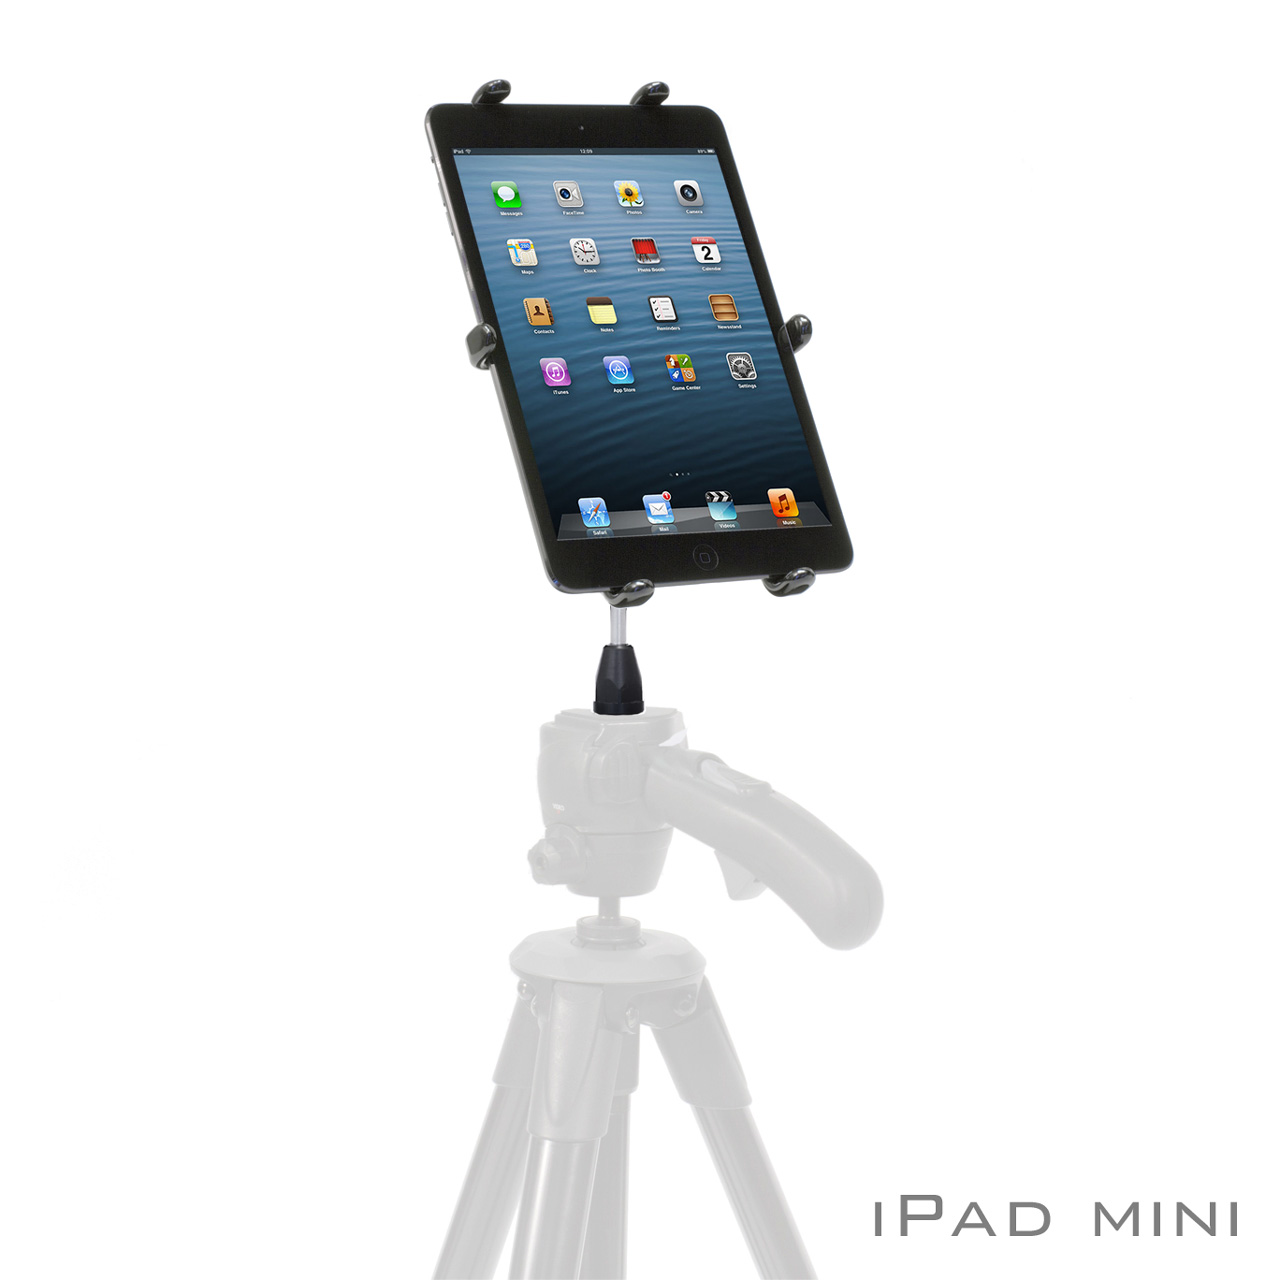 iPad mini Tripod Mount PED4 IPM10